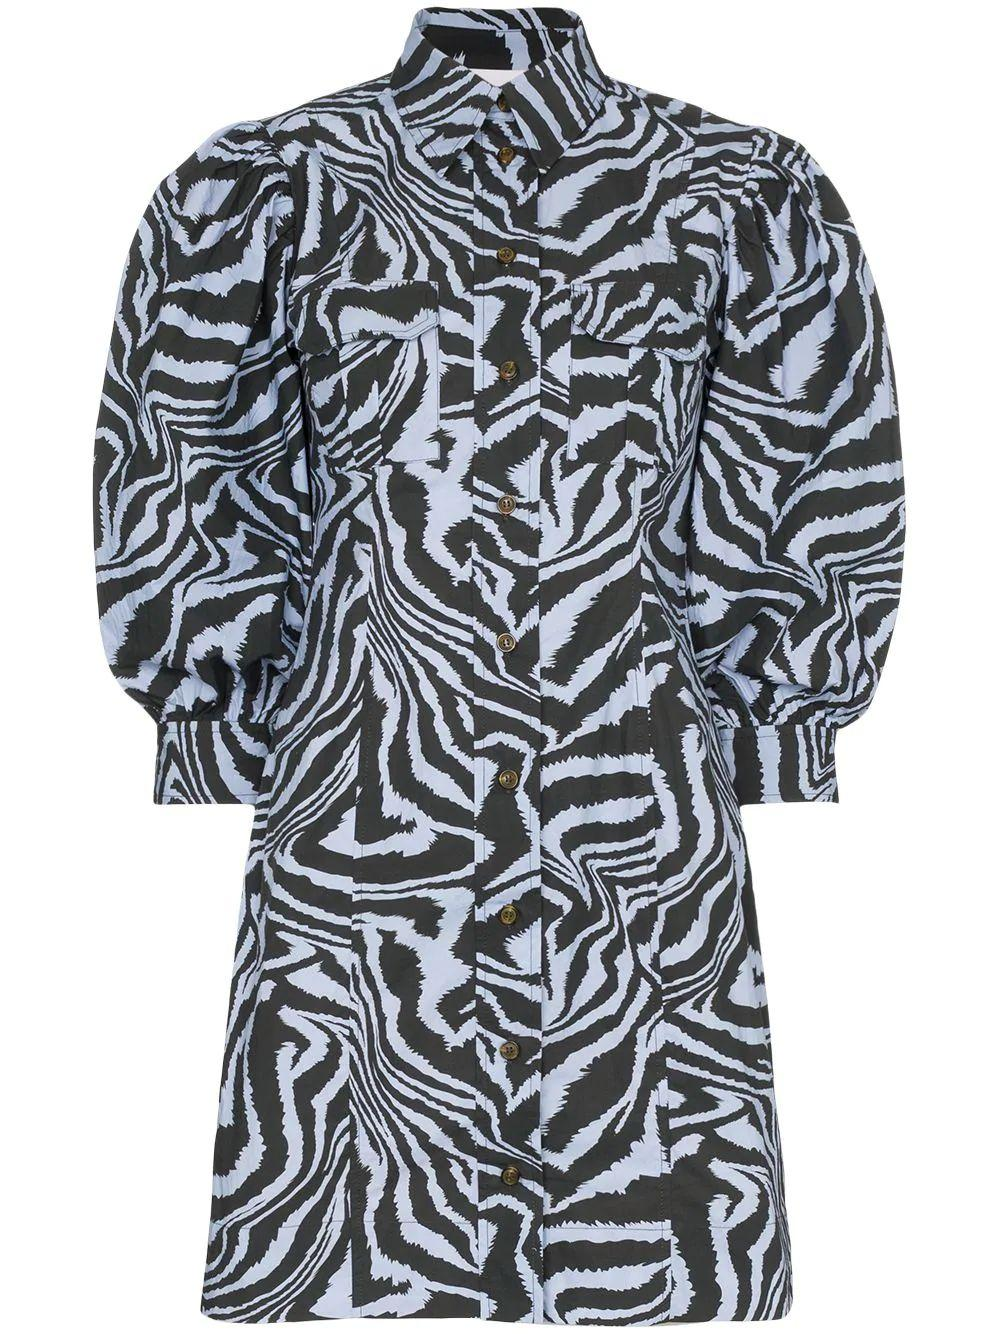 Zebra Print Cotton Poplin Dress